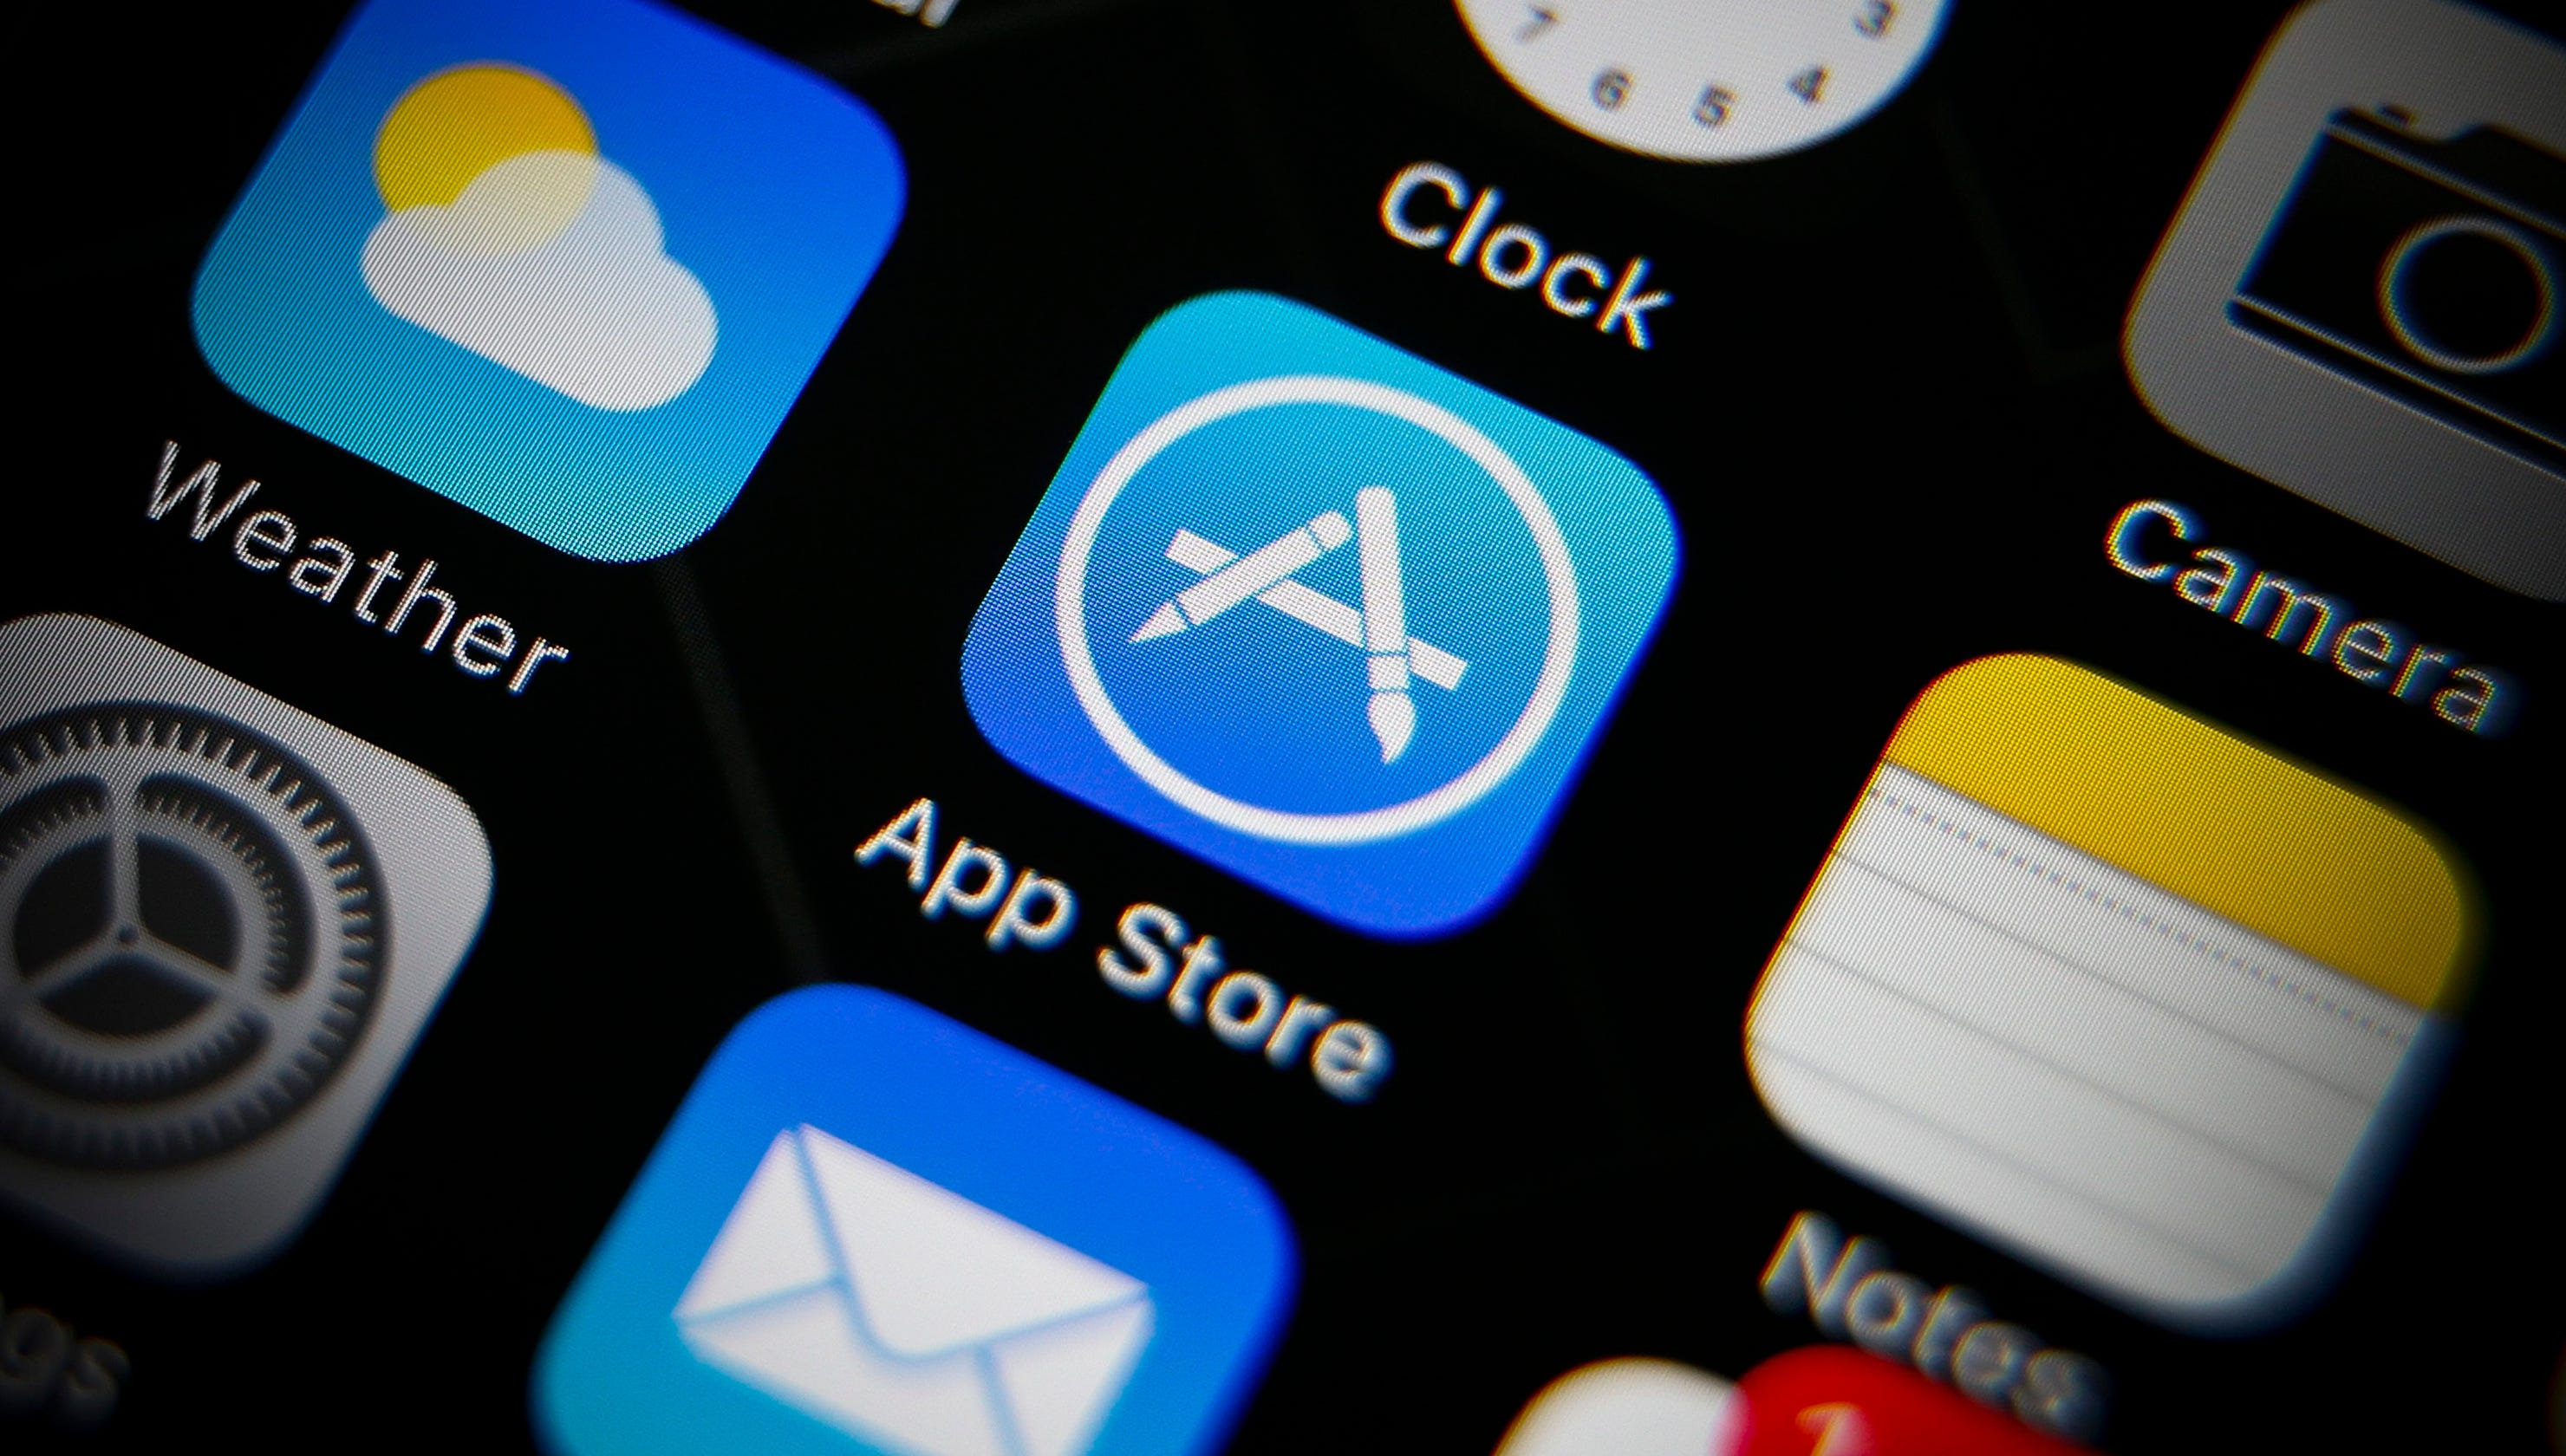 Best apps for iPhone and Android that you'll use over and over